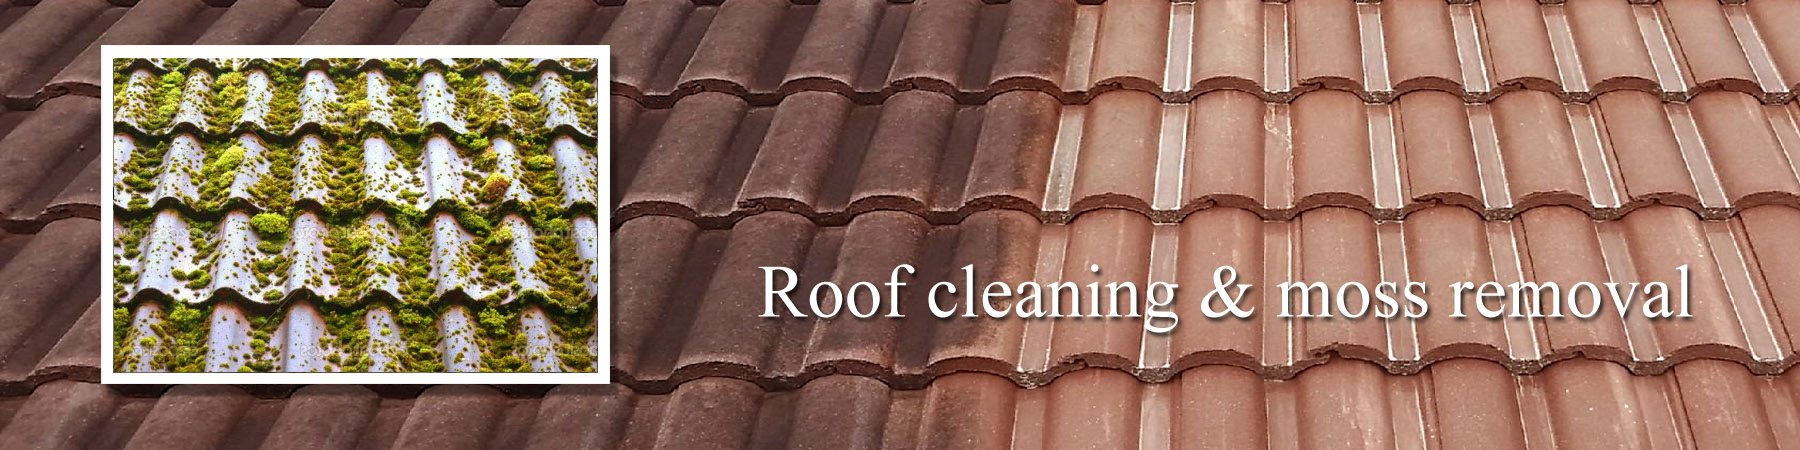 J.R. Roof Cleaning Farnham roof moss removal repairs & coating J R Cleaning